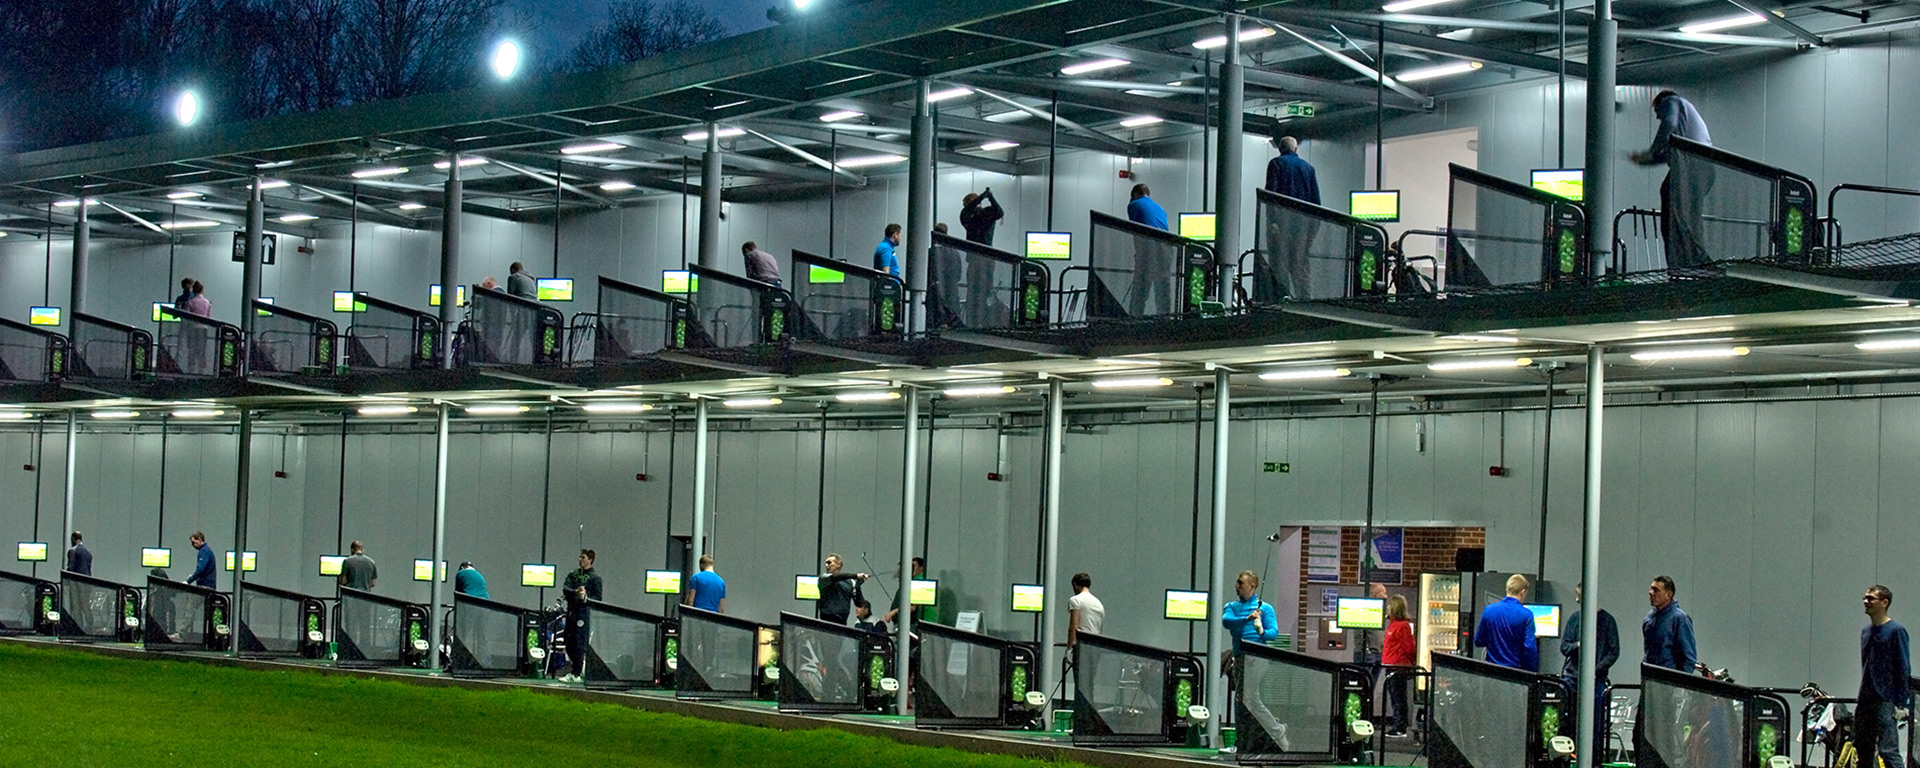 Silvermere's Toptracer Driving Range